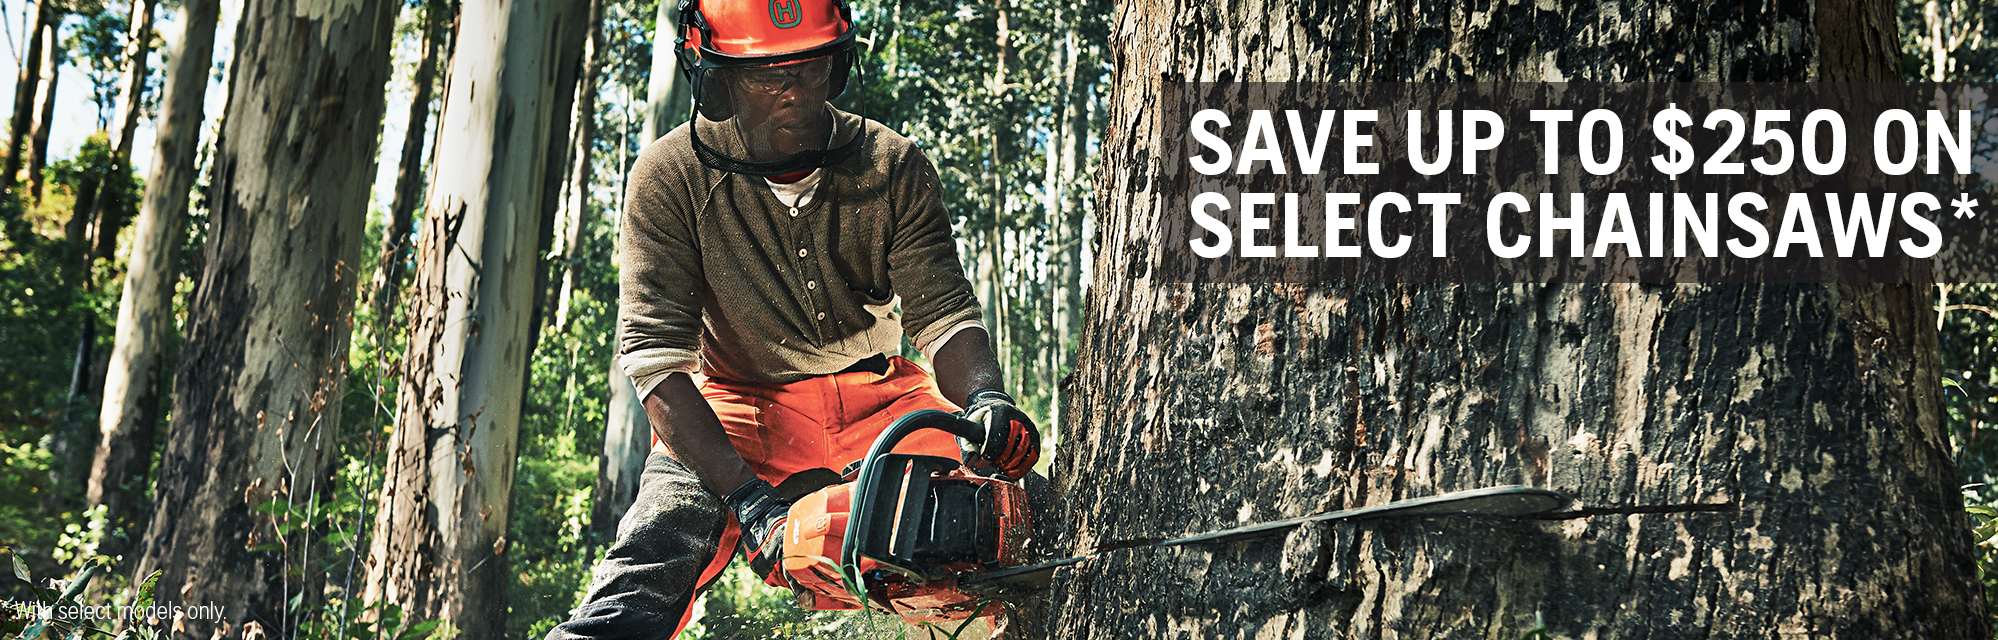 Autumn 2021 - Save 250 on Chainsaws